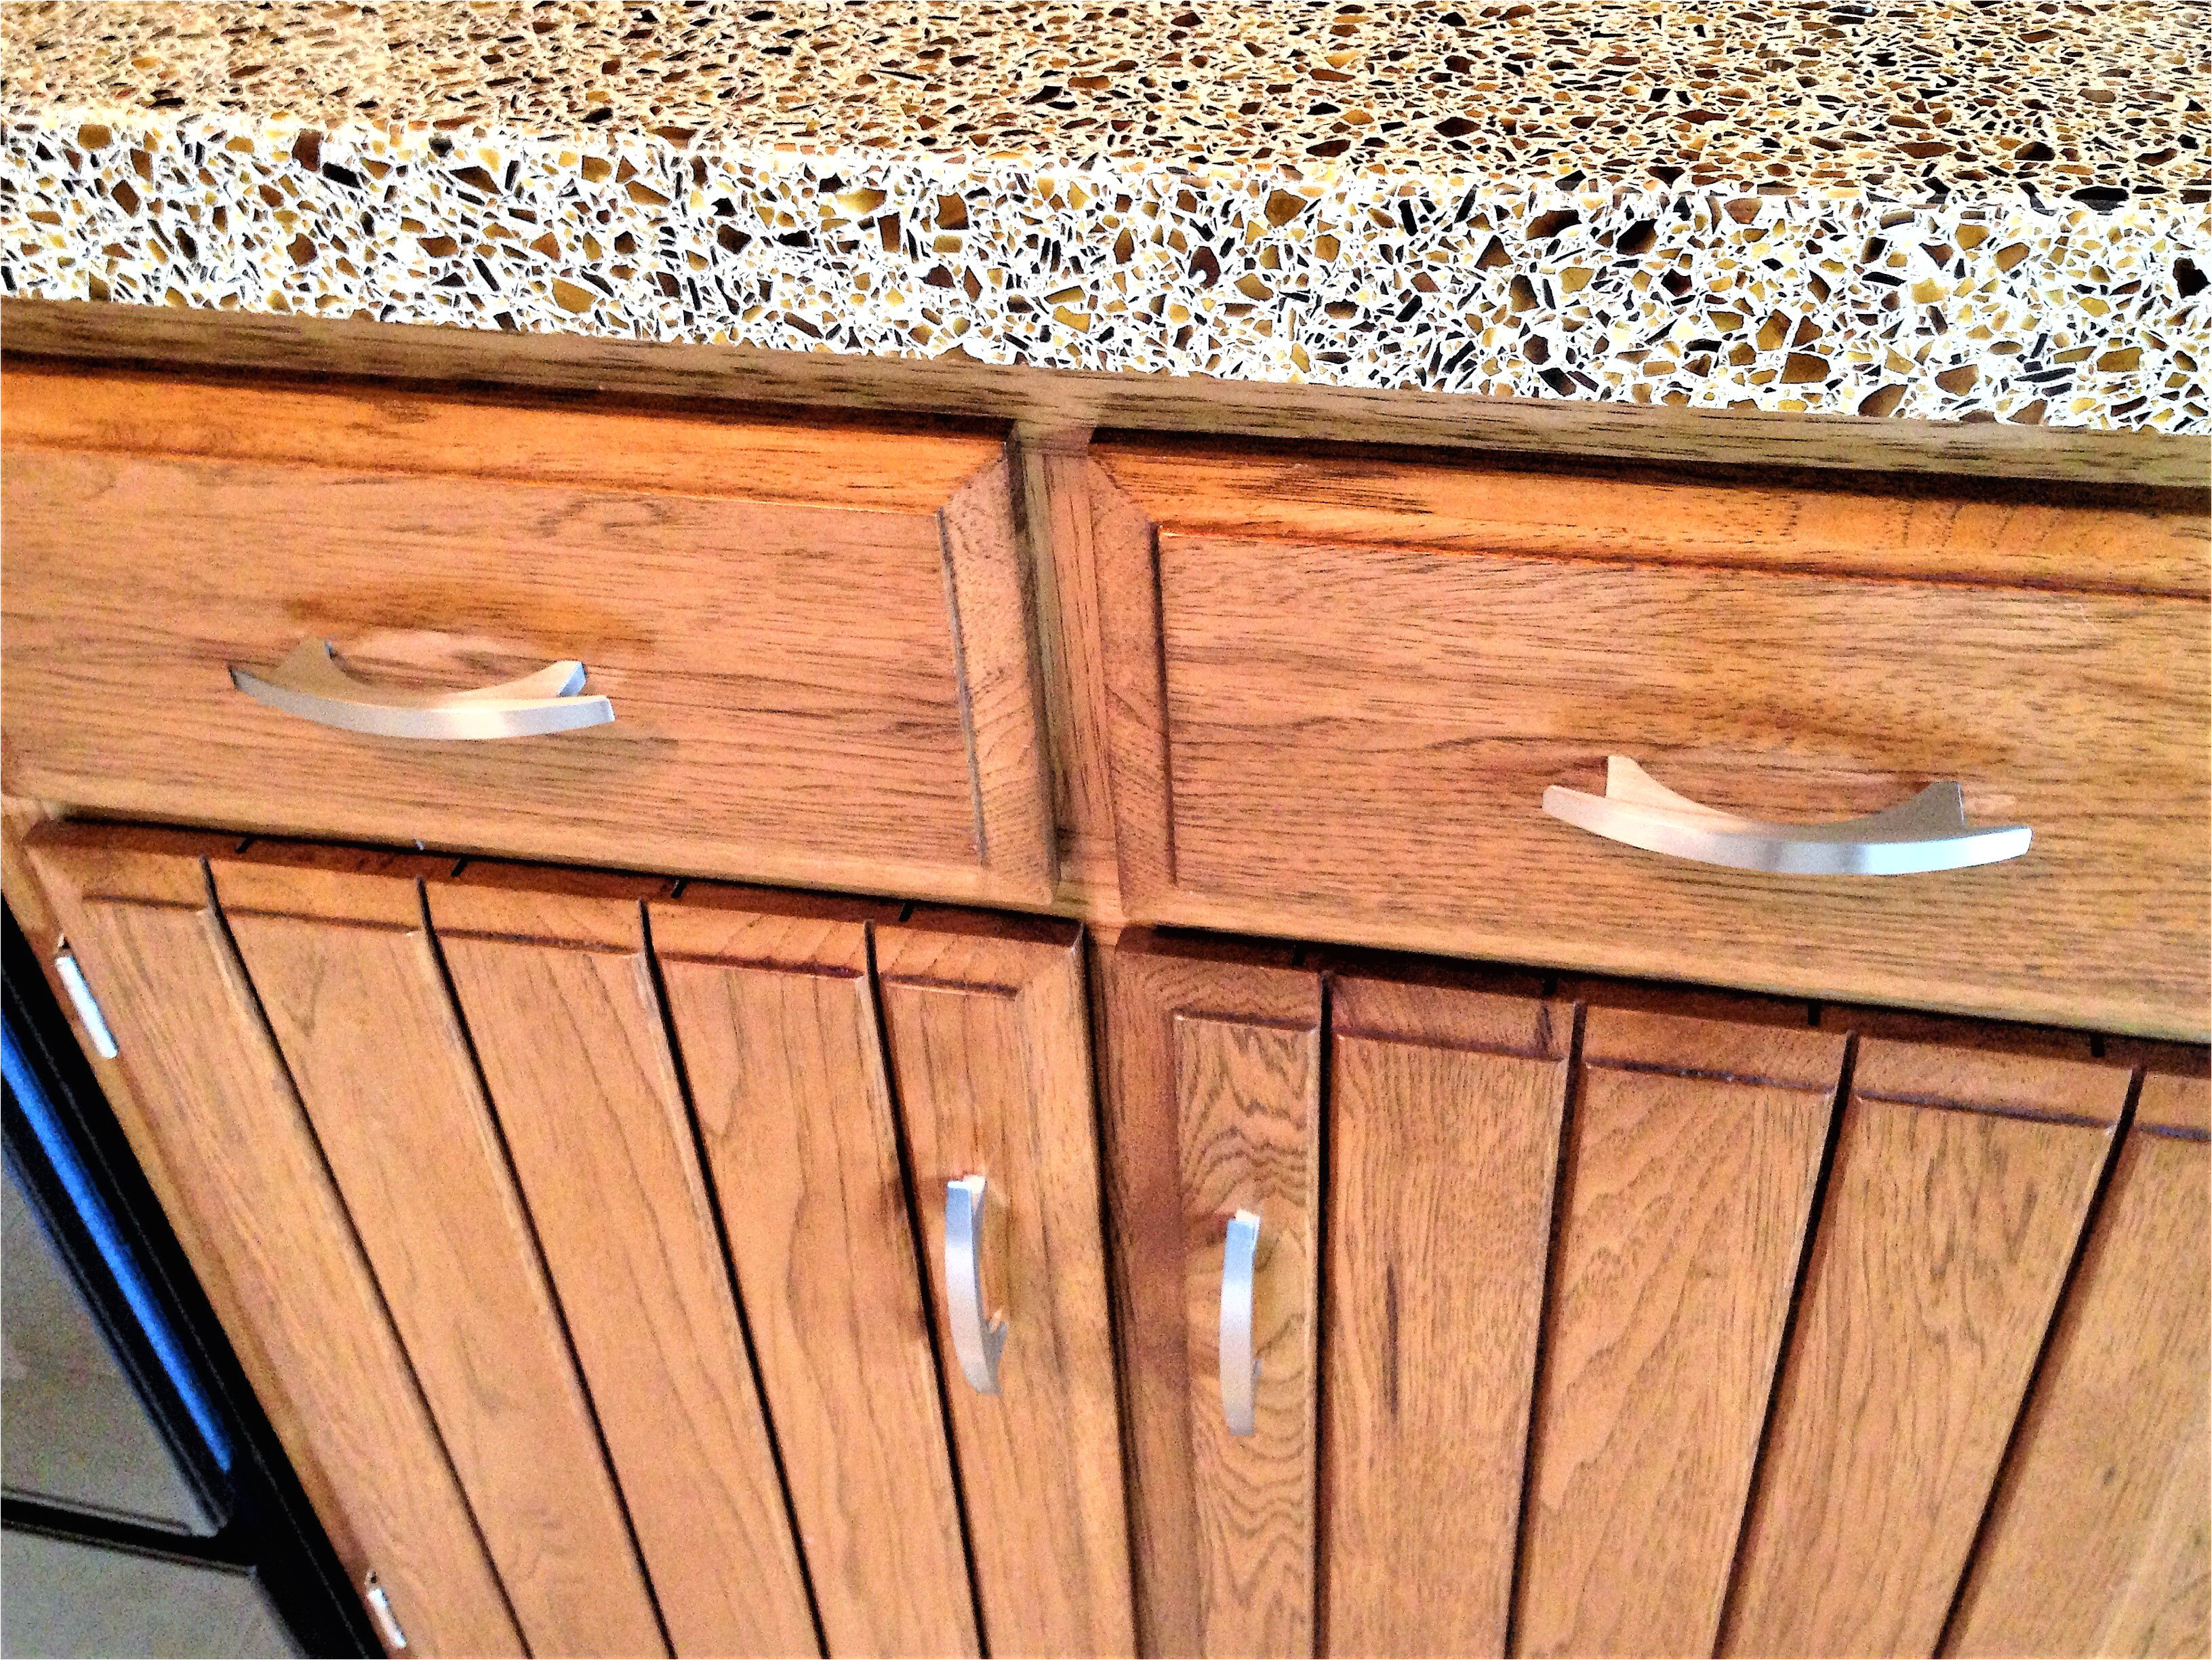 refaced kitchen cabinets with quartz countertop 582fa83b5f9b58d5b1f8fe72 jpg